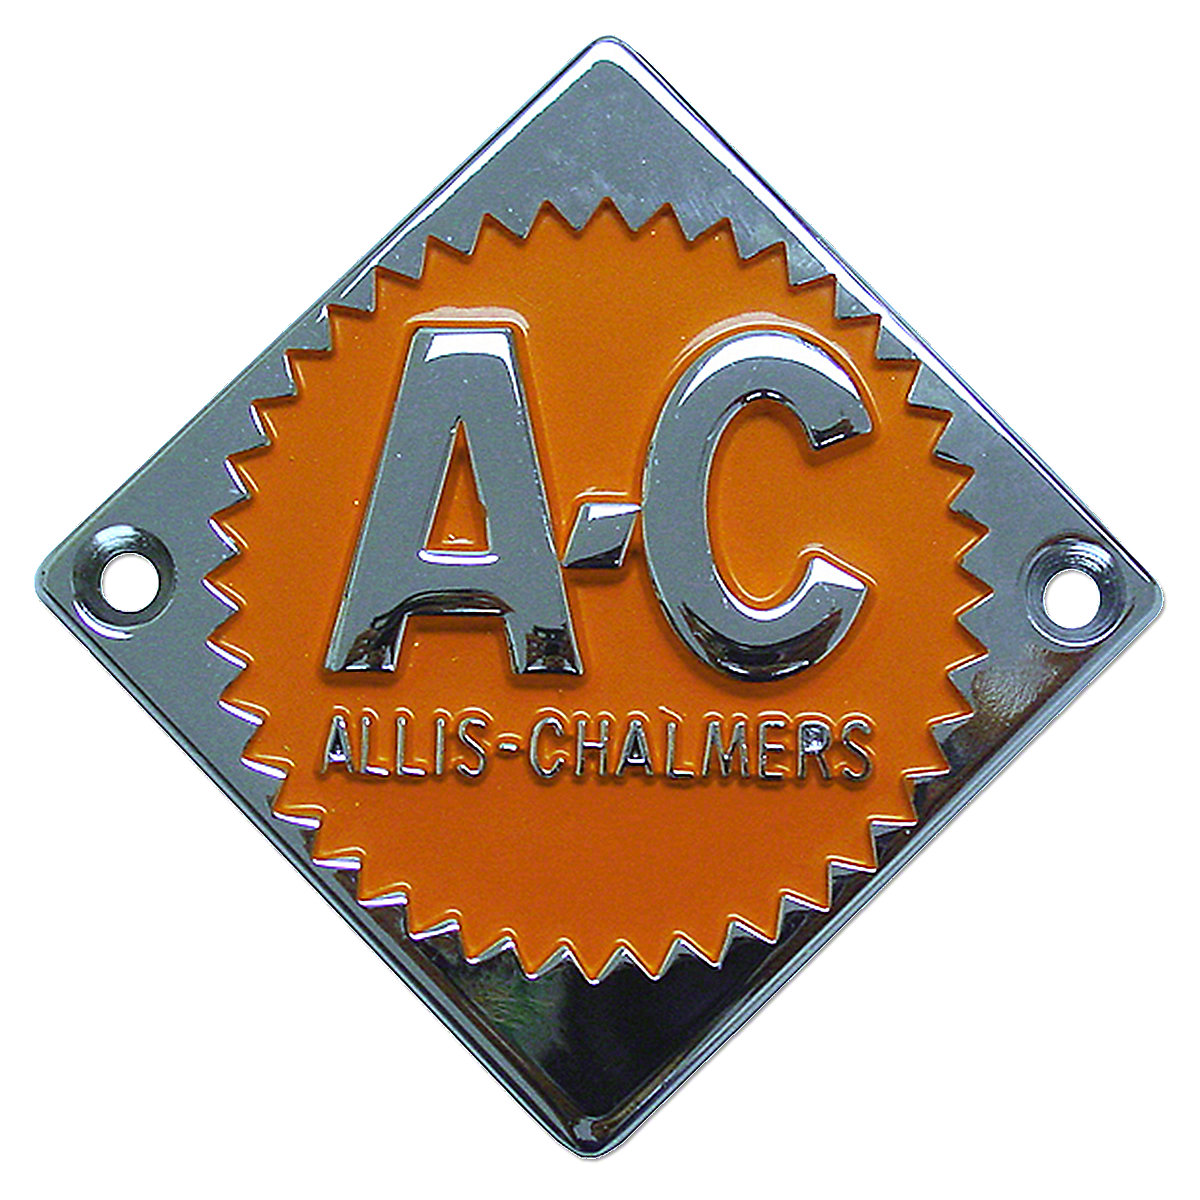 Front Nose Emblem For Allis Chalmers: D10, D12, D14, D17, I40, I400, I60.